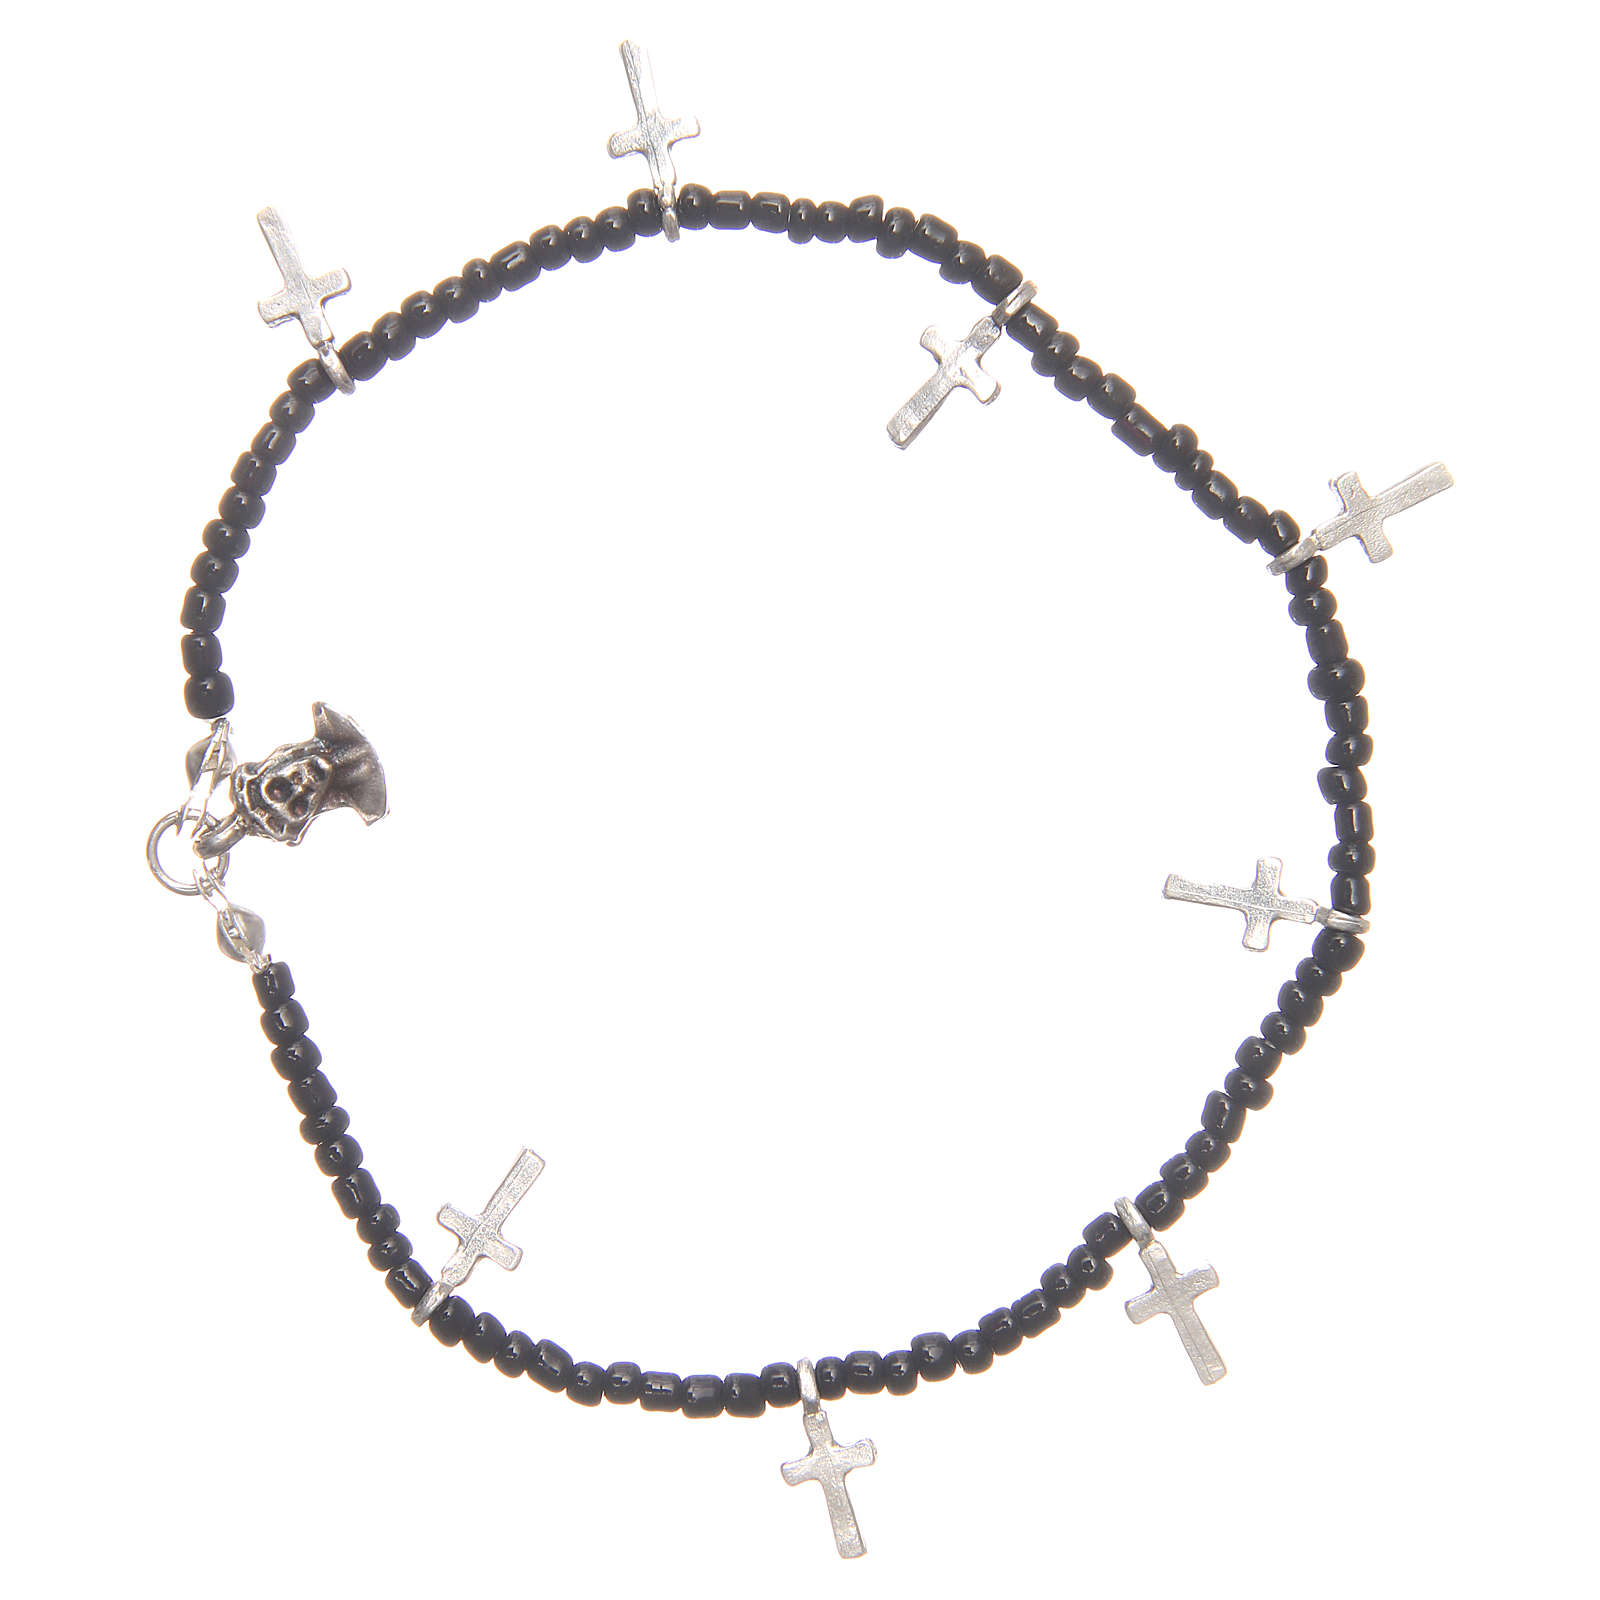 Bracelet with crosses and black beads 4